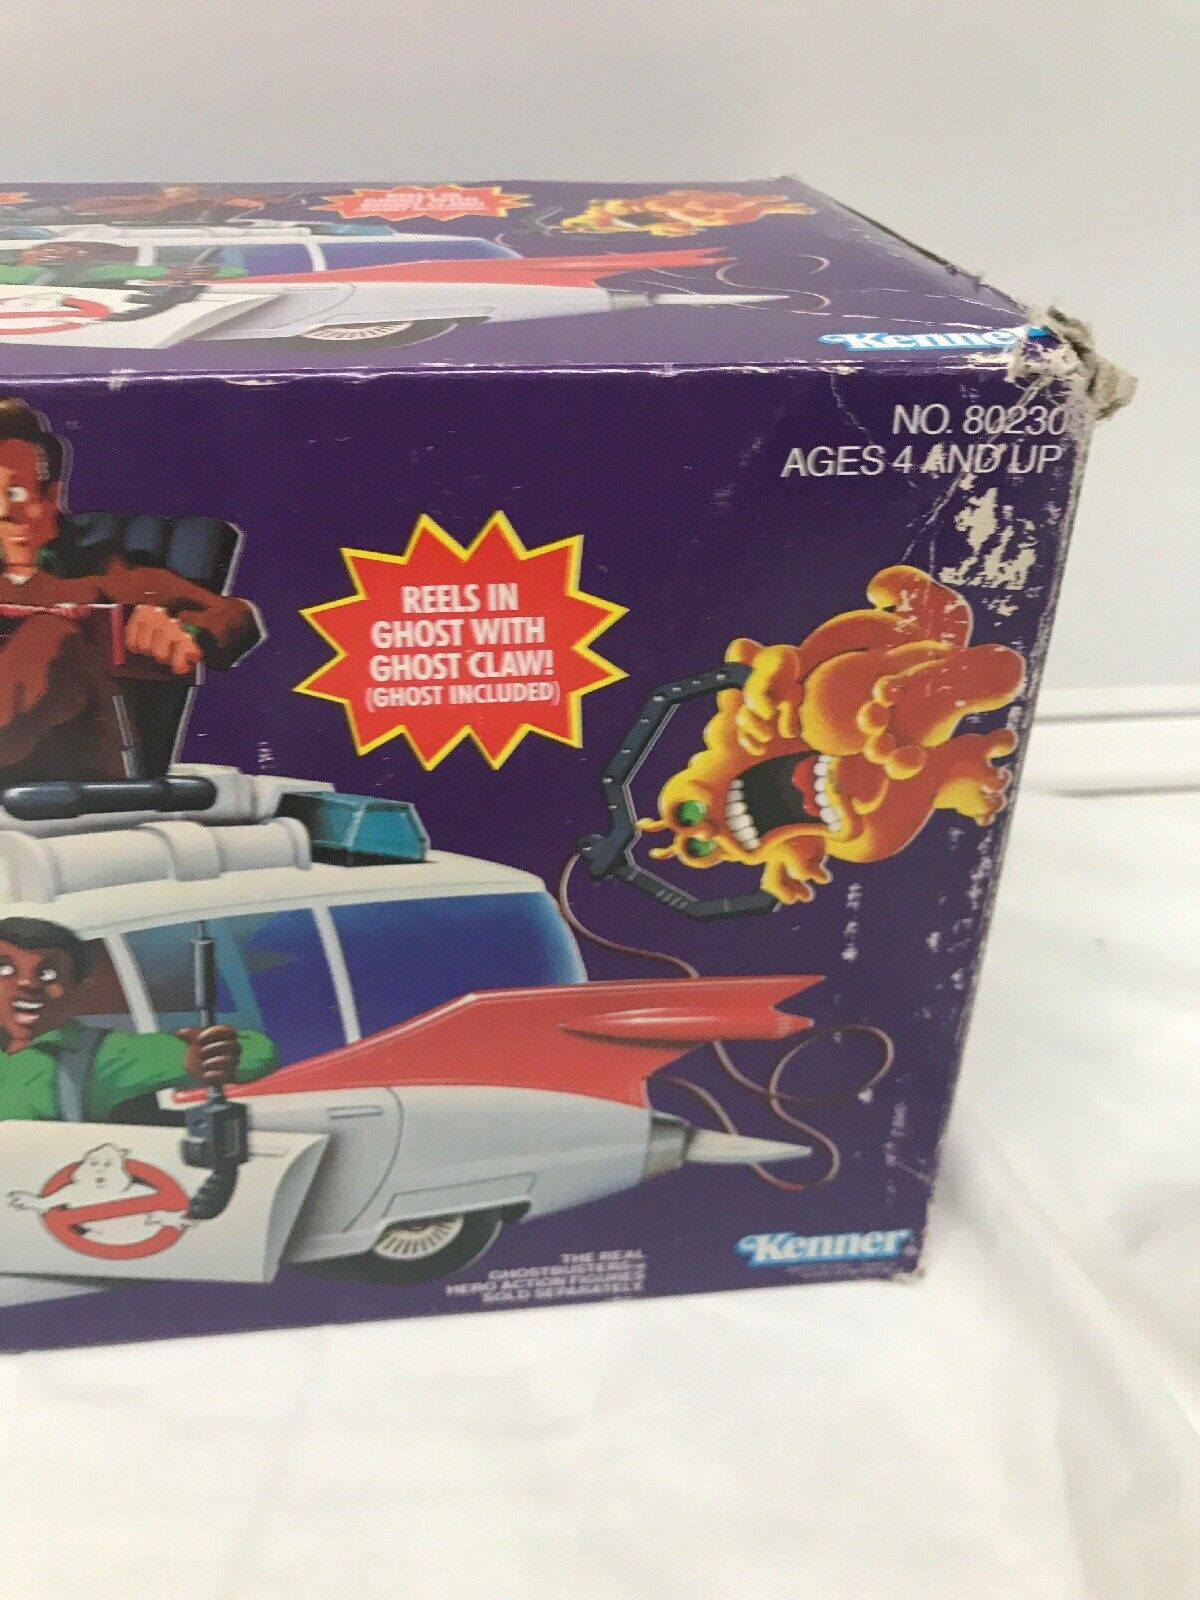 VINTAGE 1986 KENNER THE REAL GHOSTBUSTERS ECTO-1  Complete With With With Insert Look cc2bdd